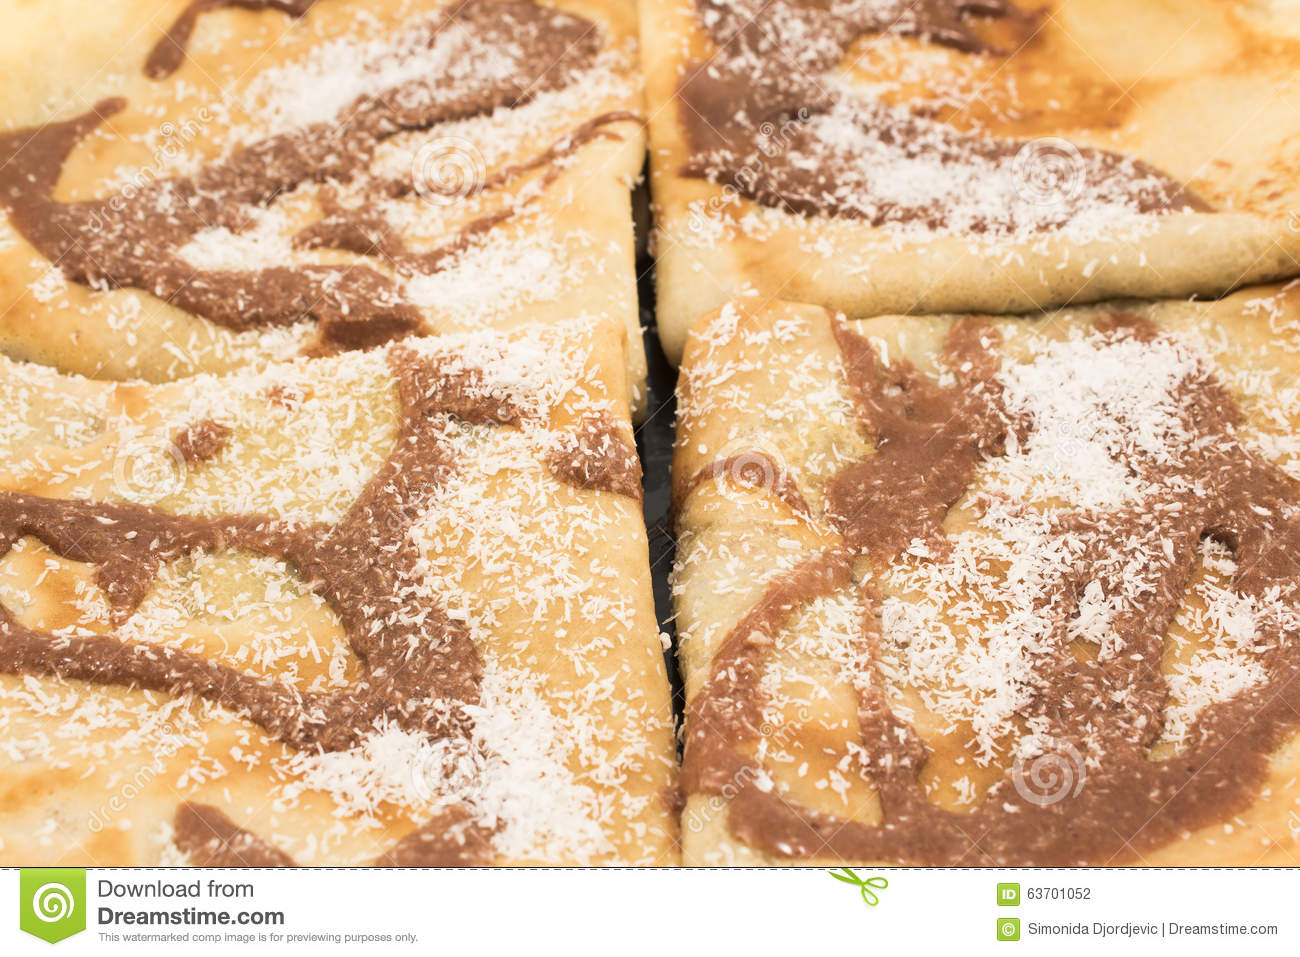 crepes-chocolate-coconut-63701052.jpg